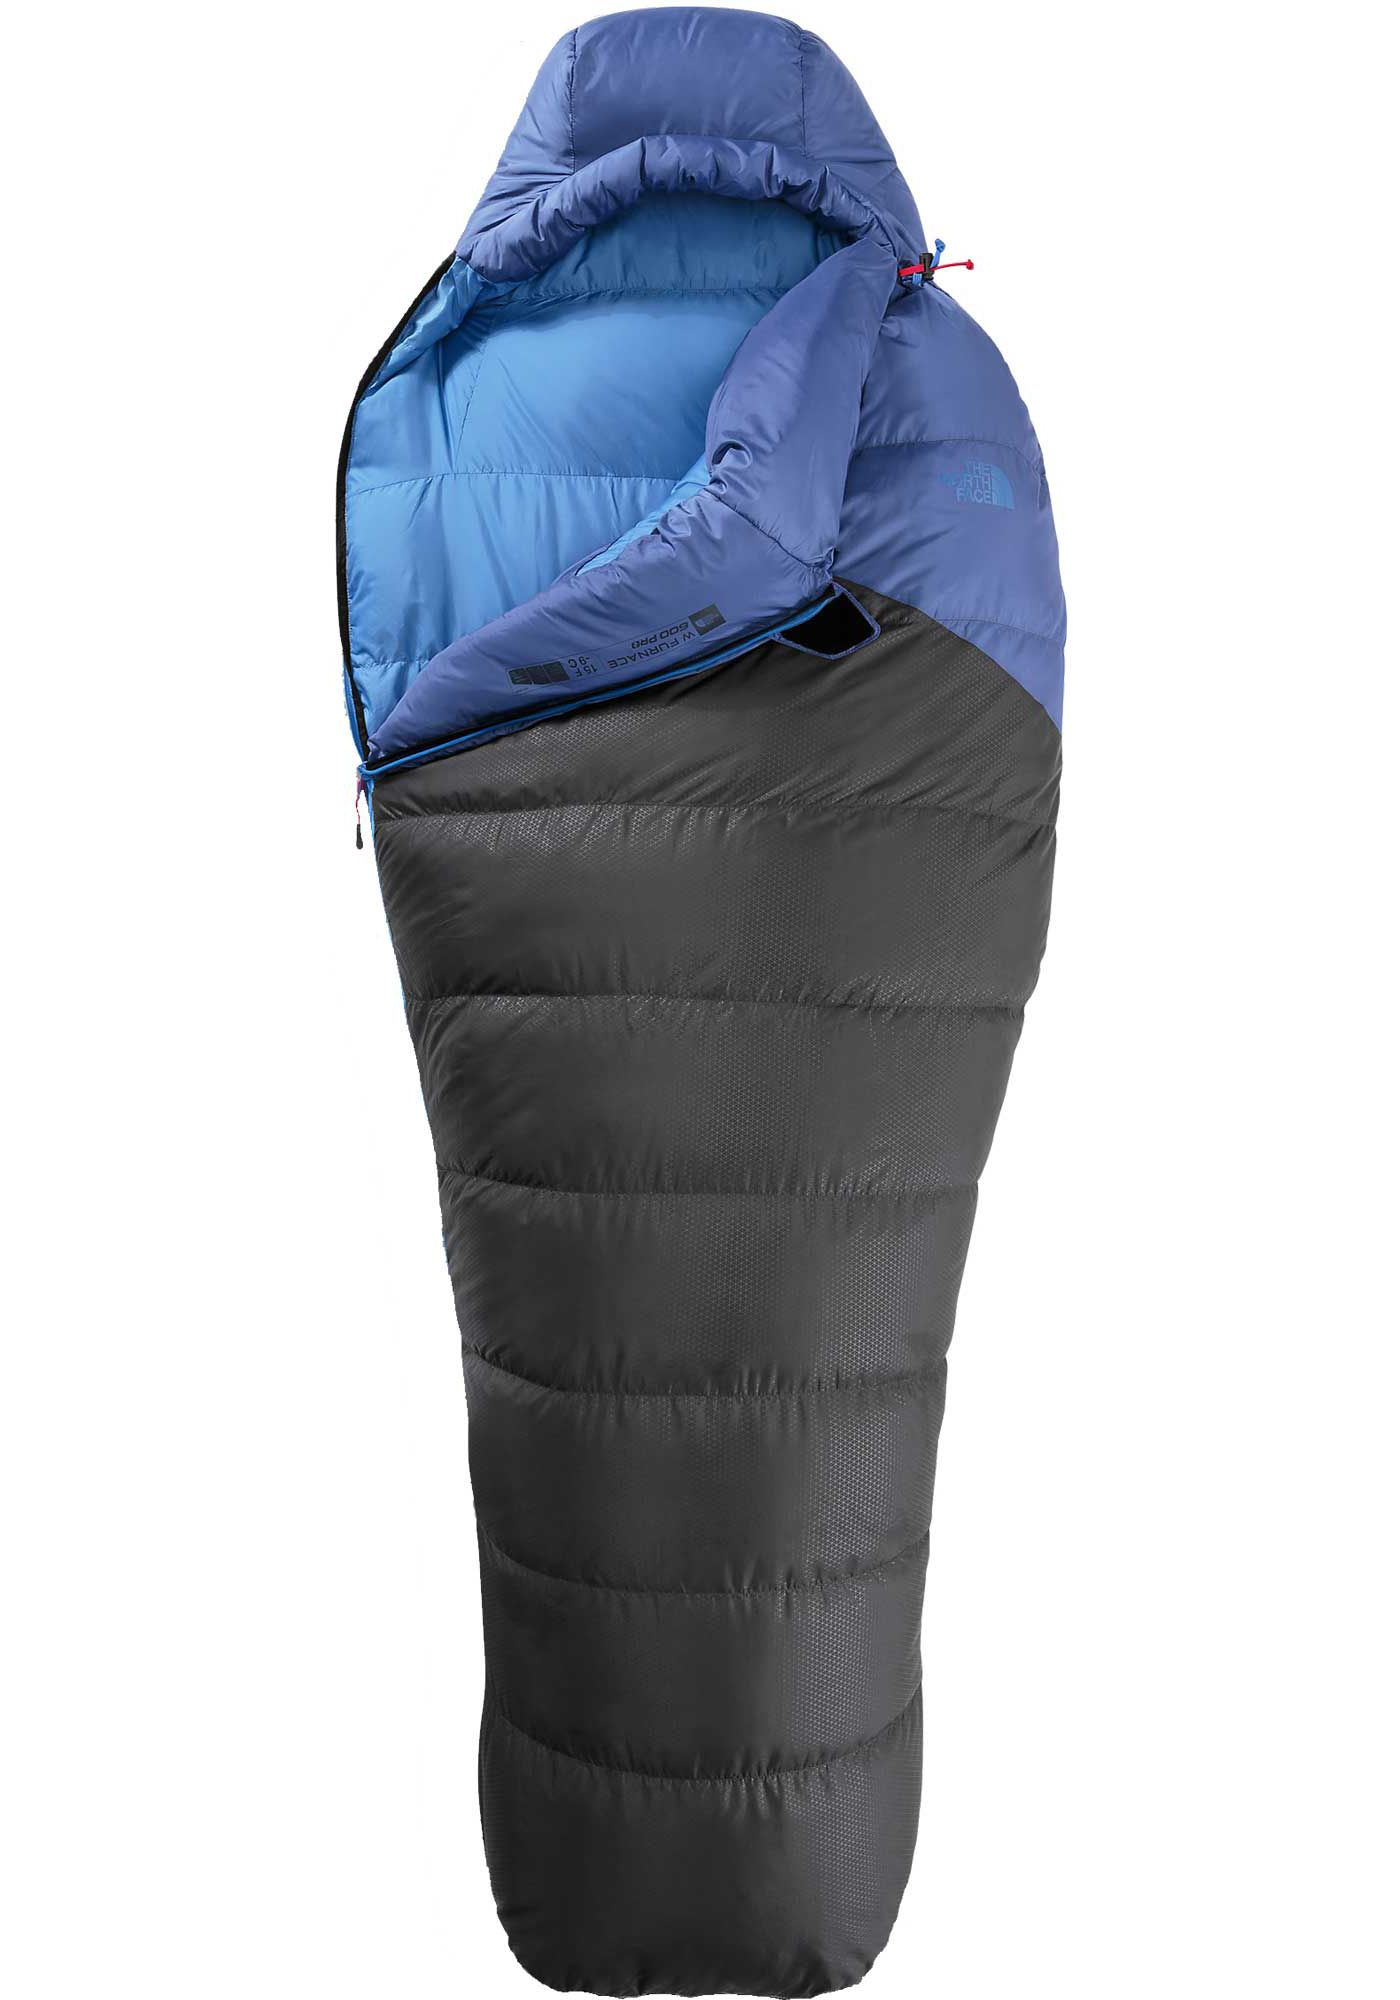 The North Face Women's Furnace 20°F Sleeping Bag